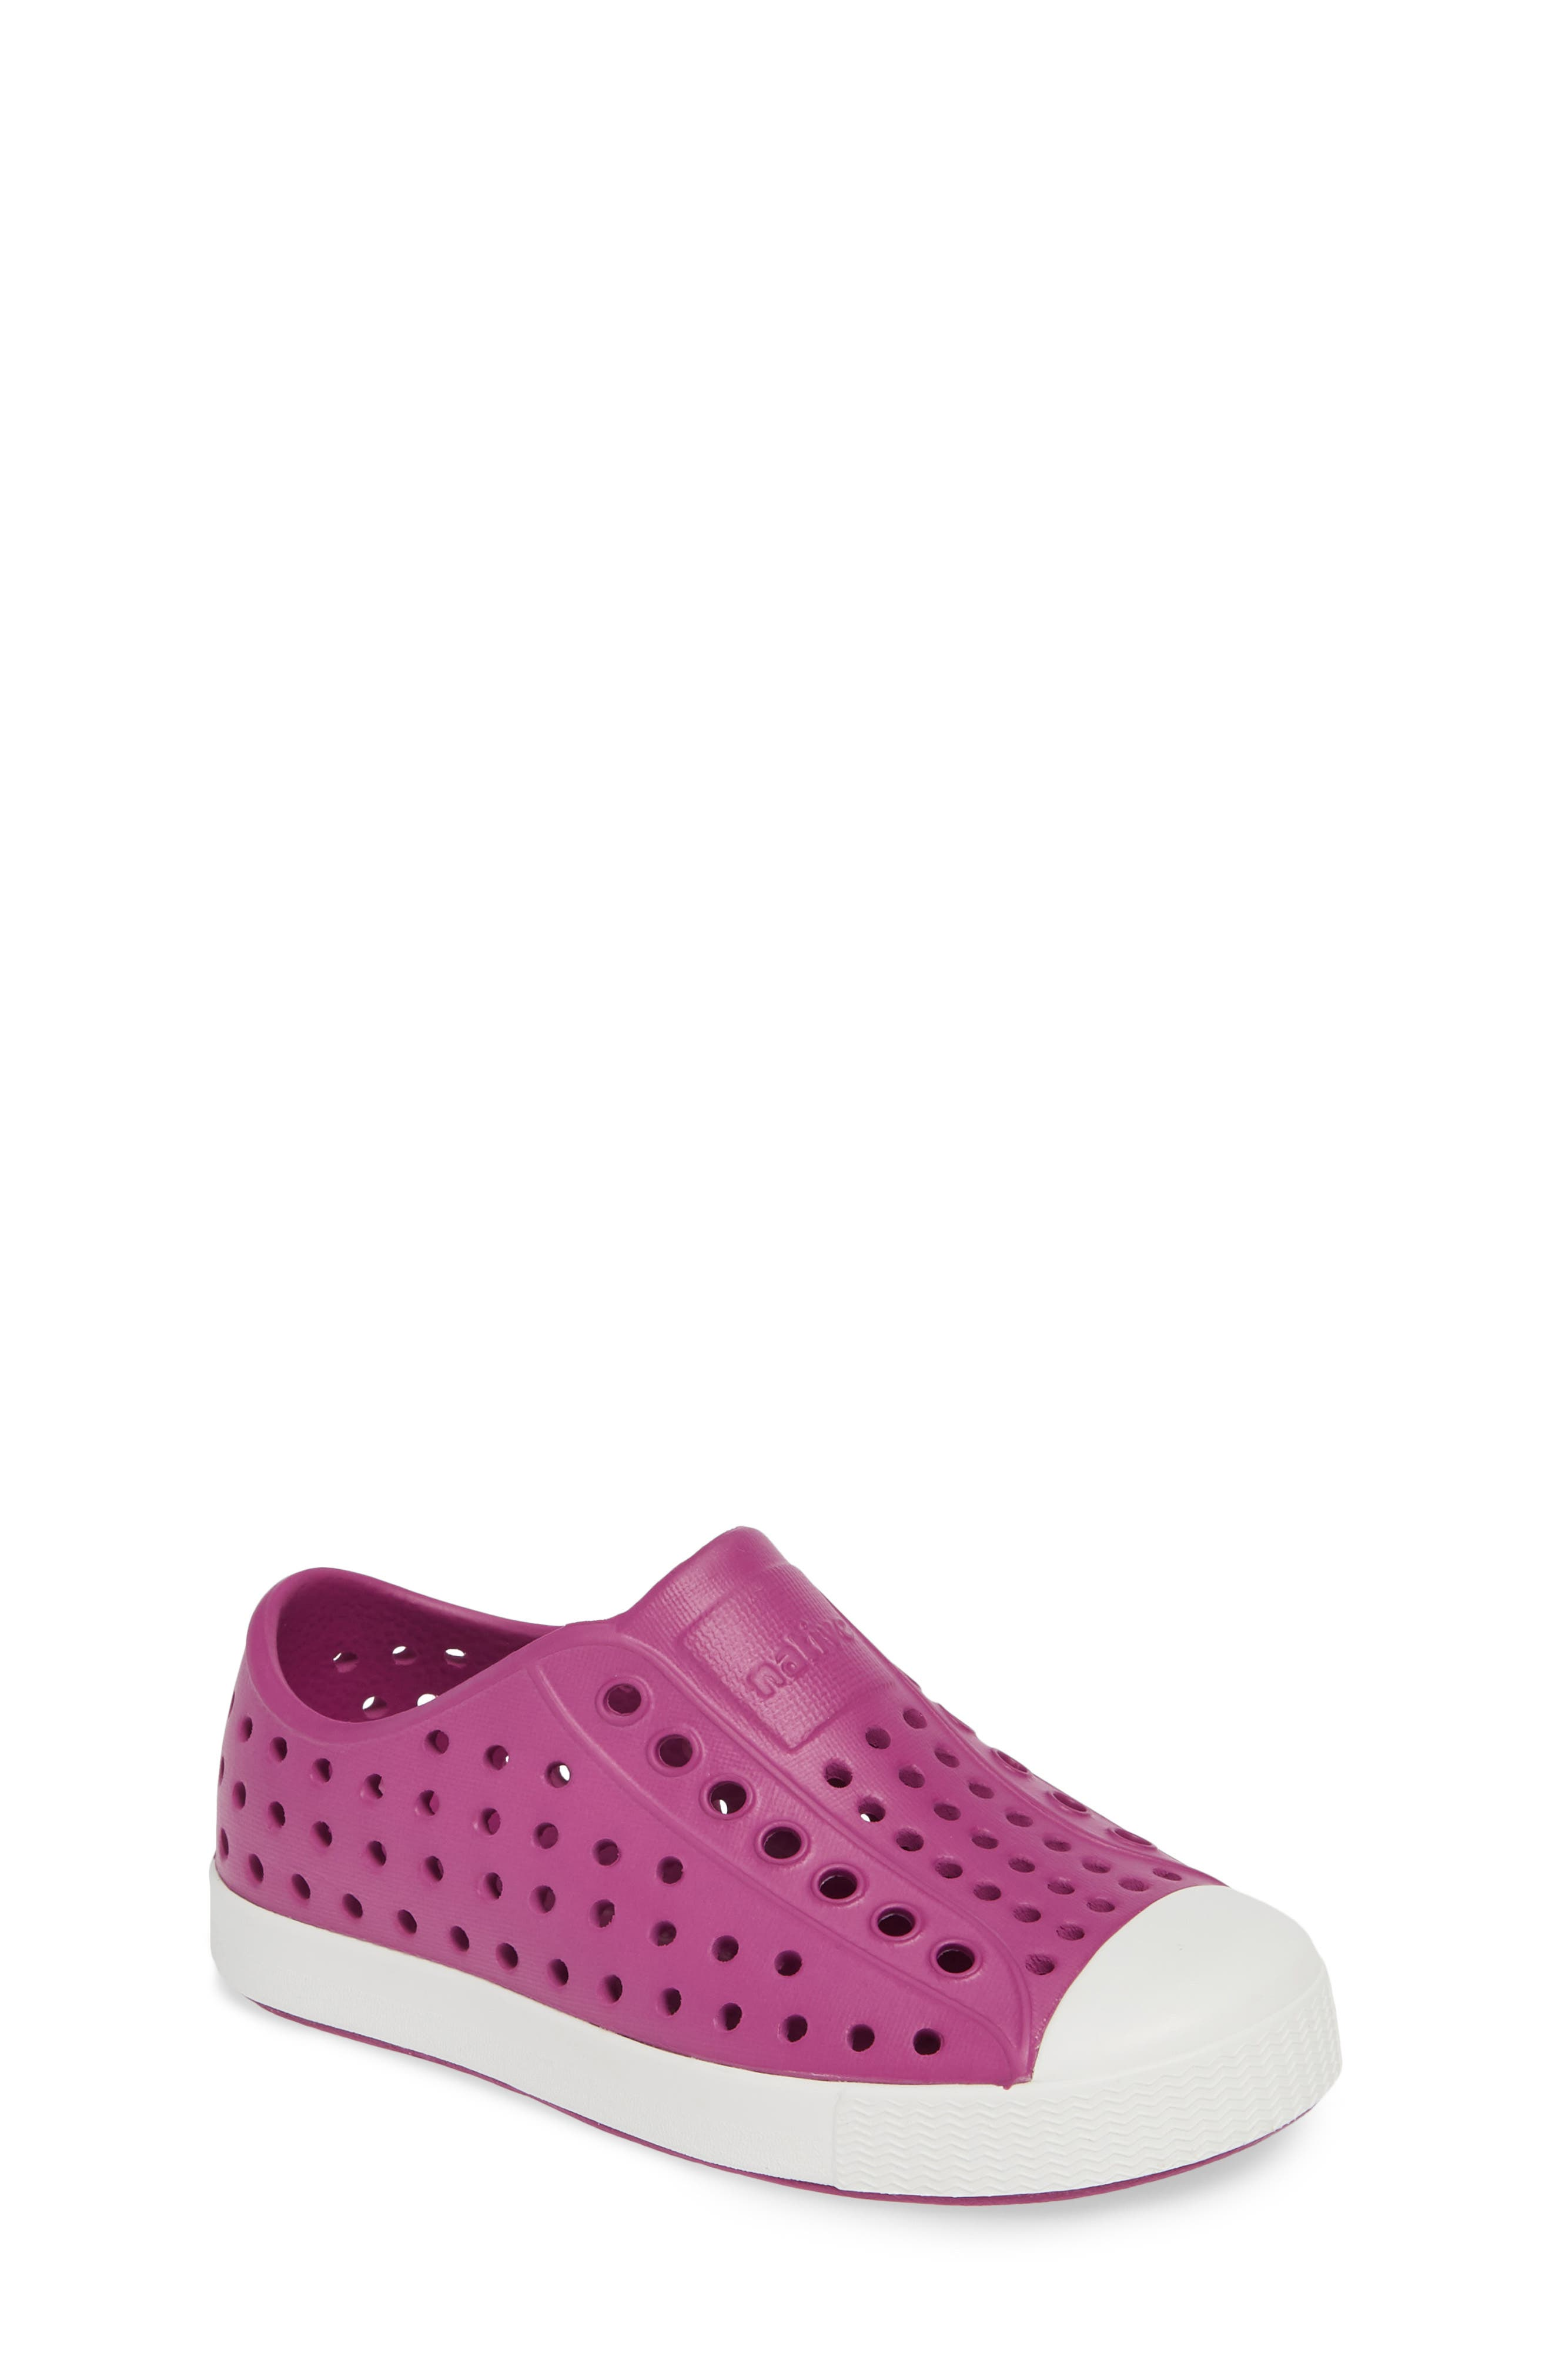 All Girls' Native Shoes Baby & Walker Shoes | Nordstrom